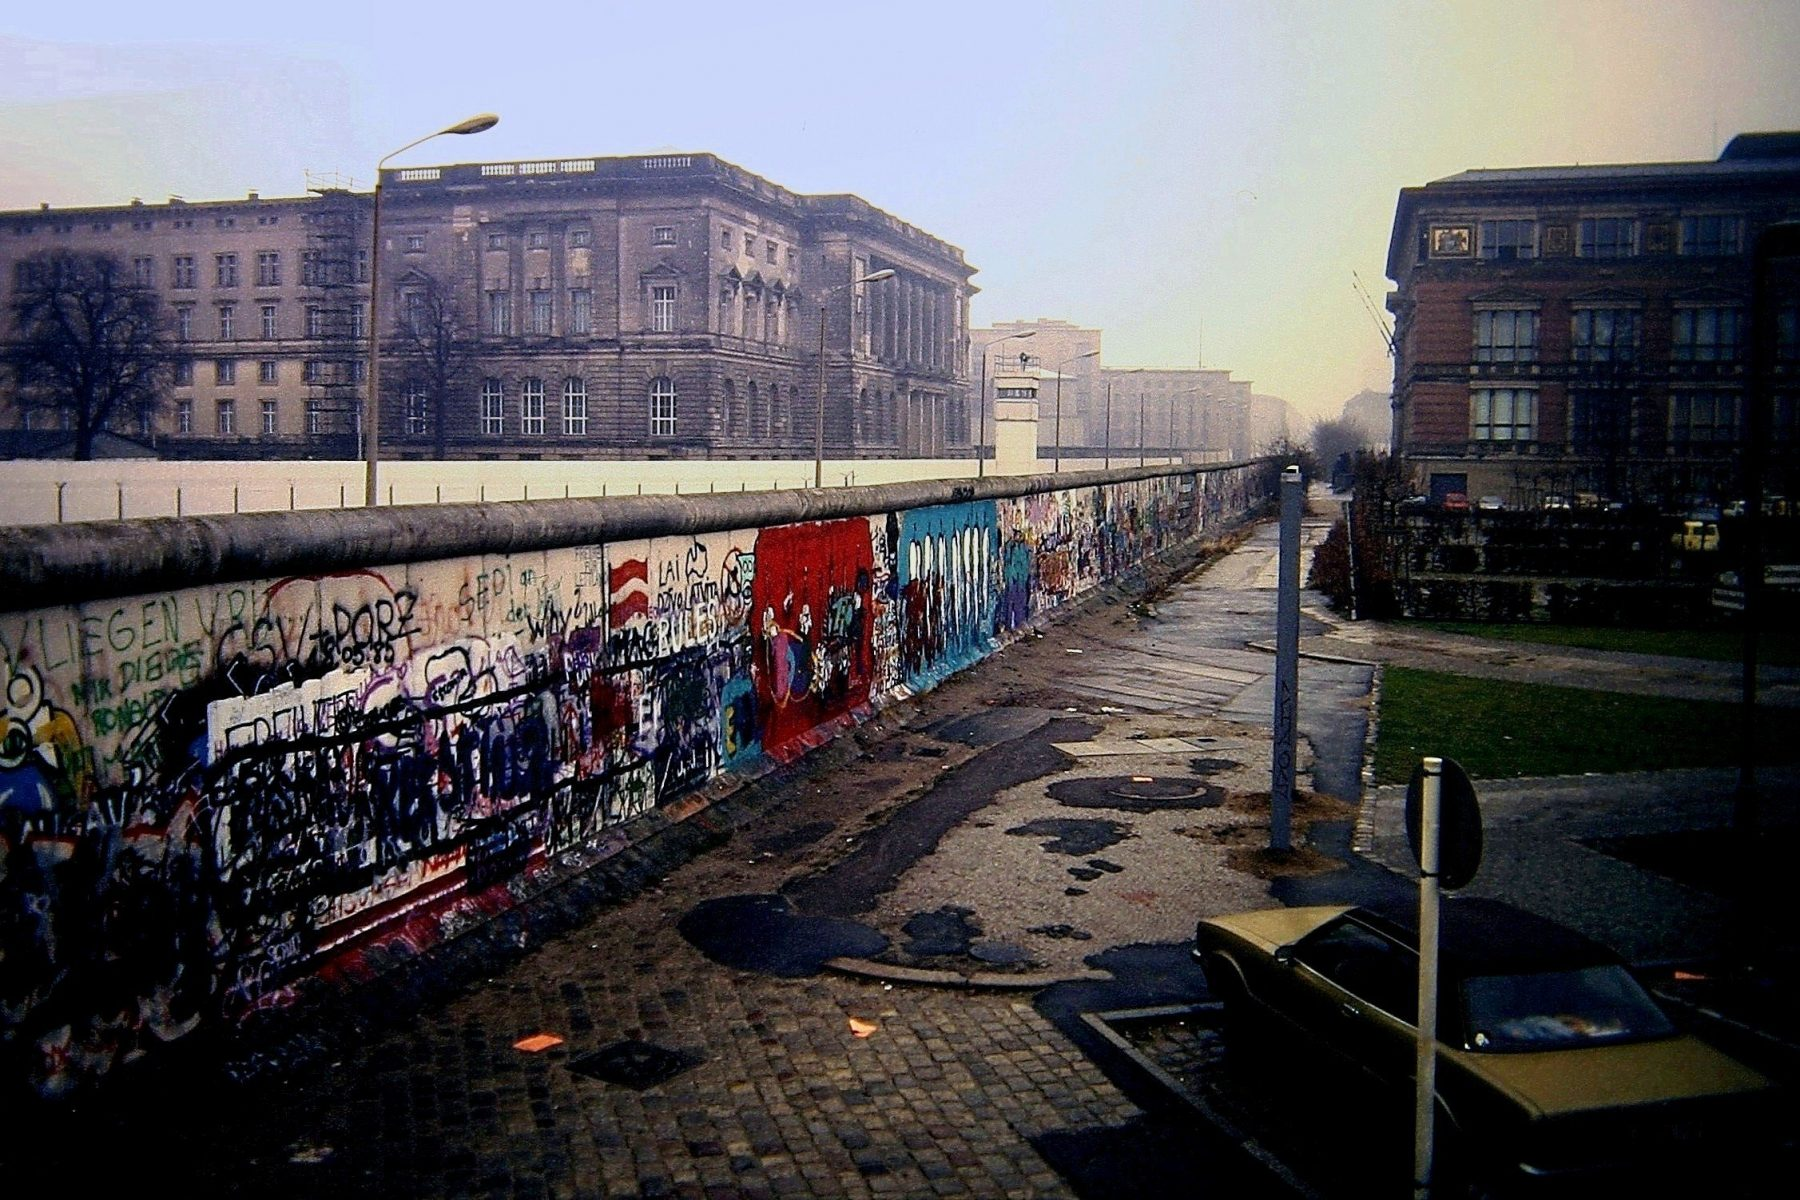 The Rise and Fall of the Berlin Wall - Photo Essays]